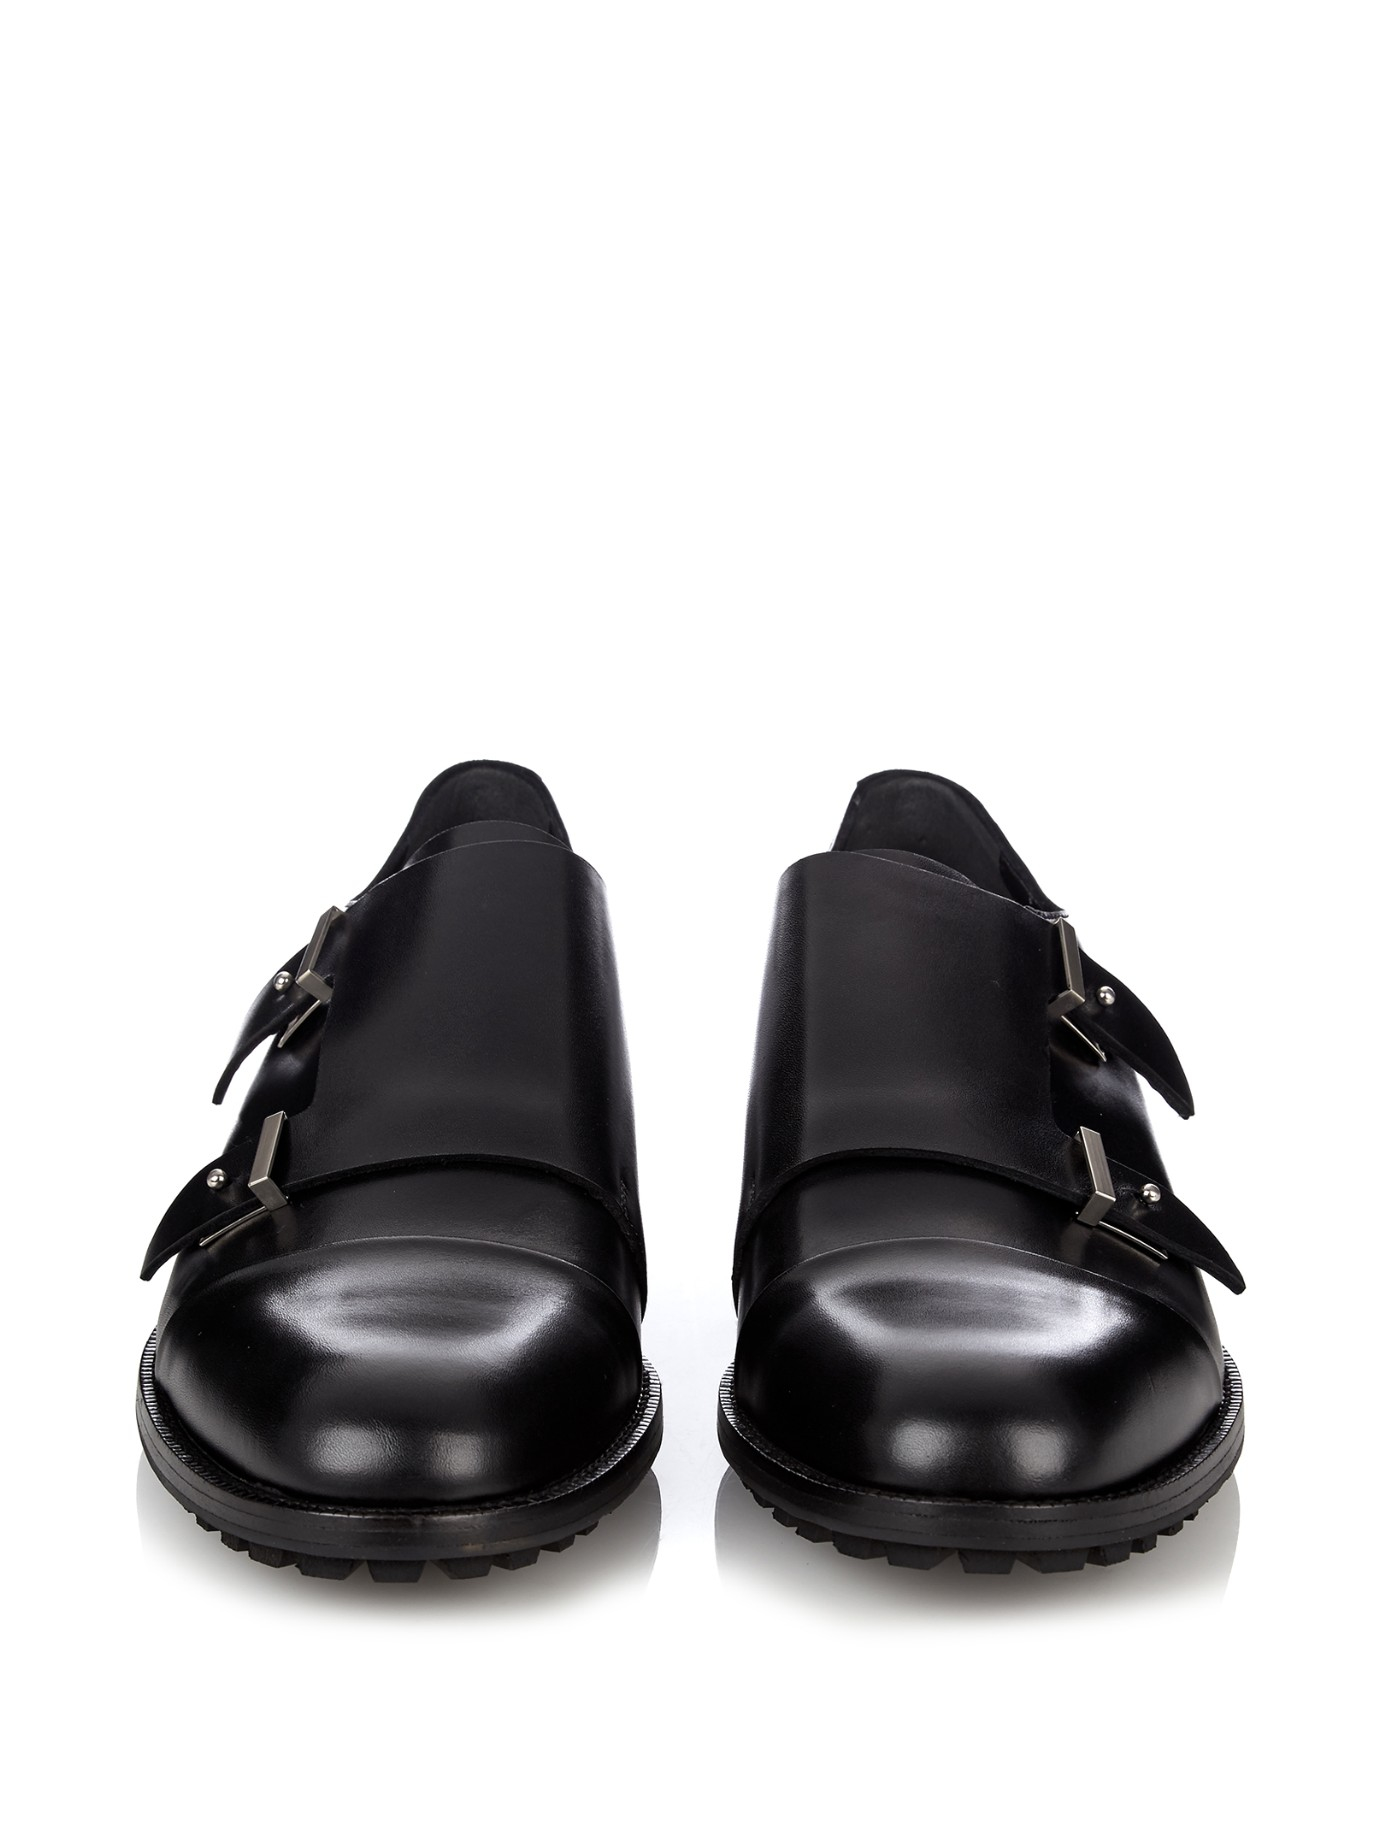 Balenciaga Monk Strap Leather Shoes In Black For Men Lyst